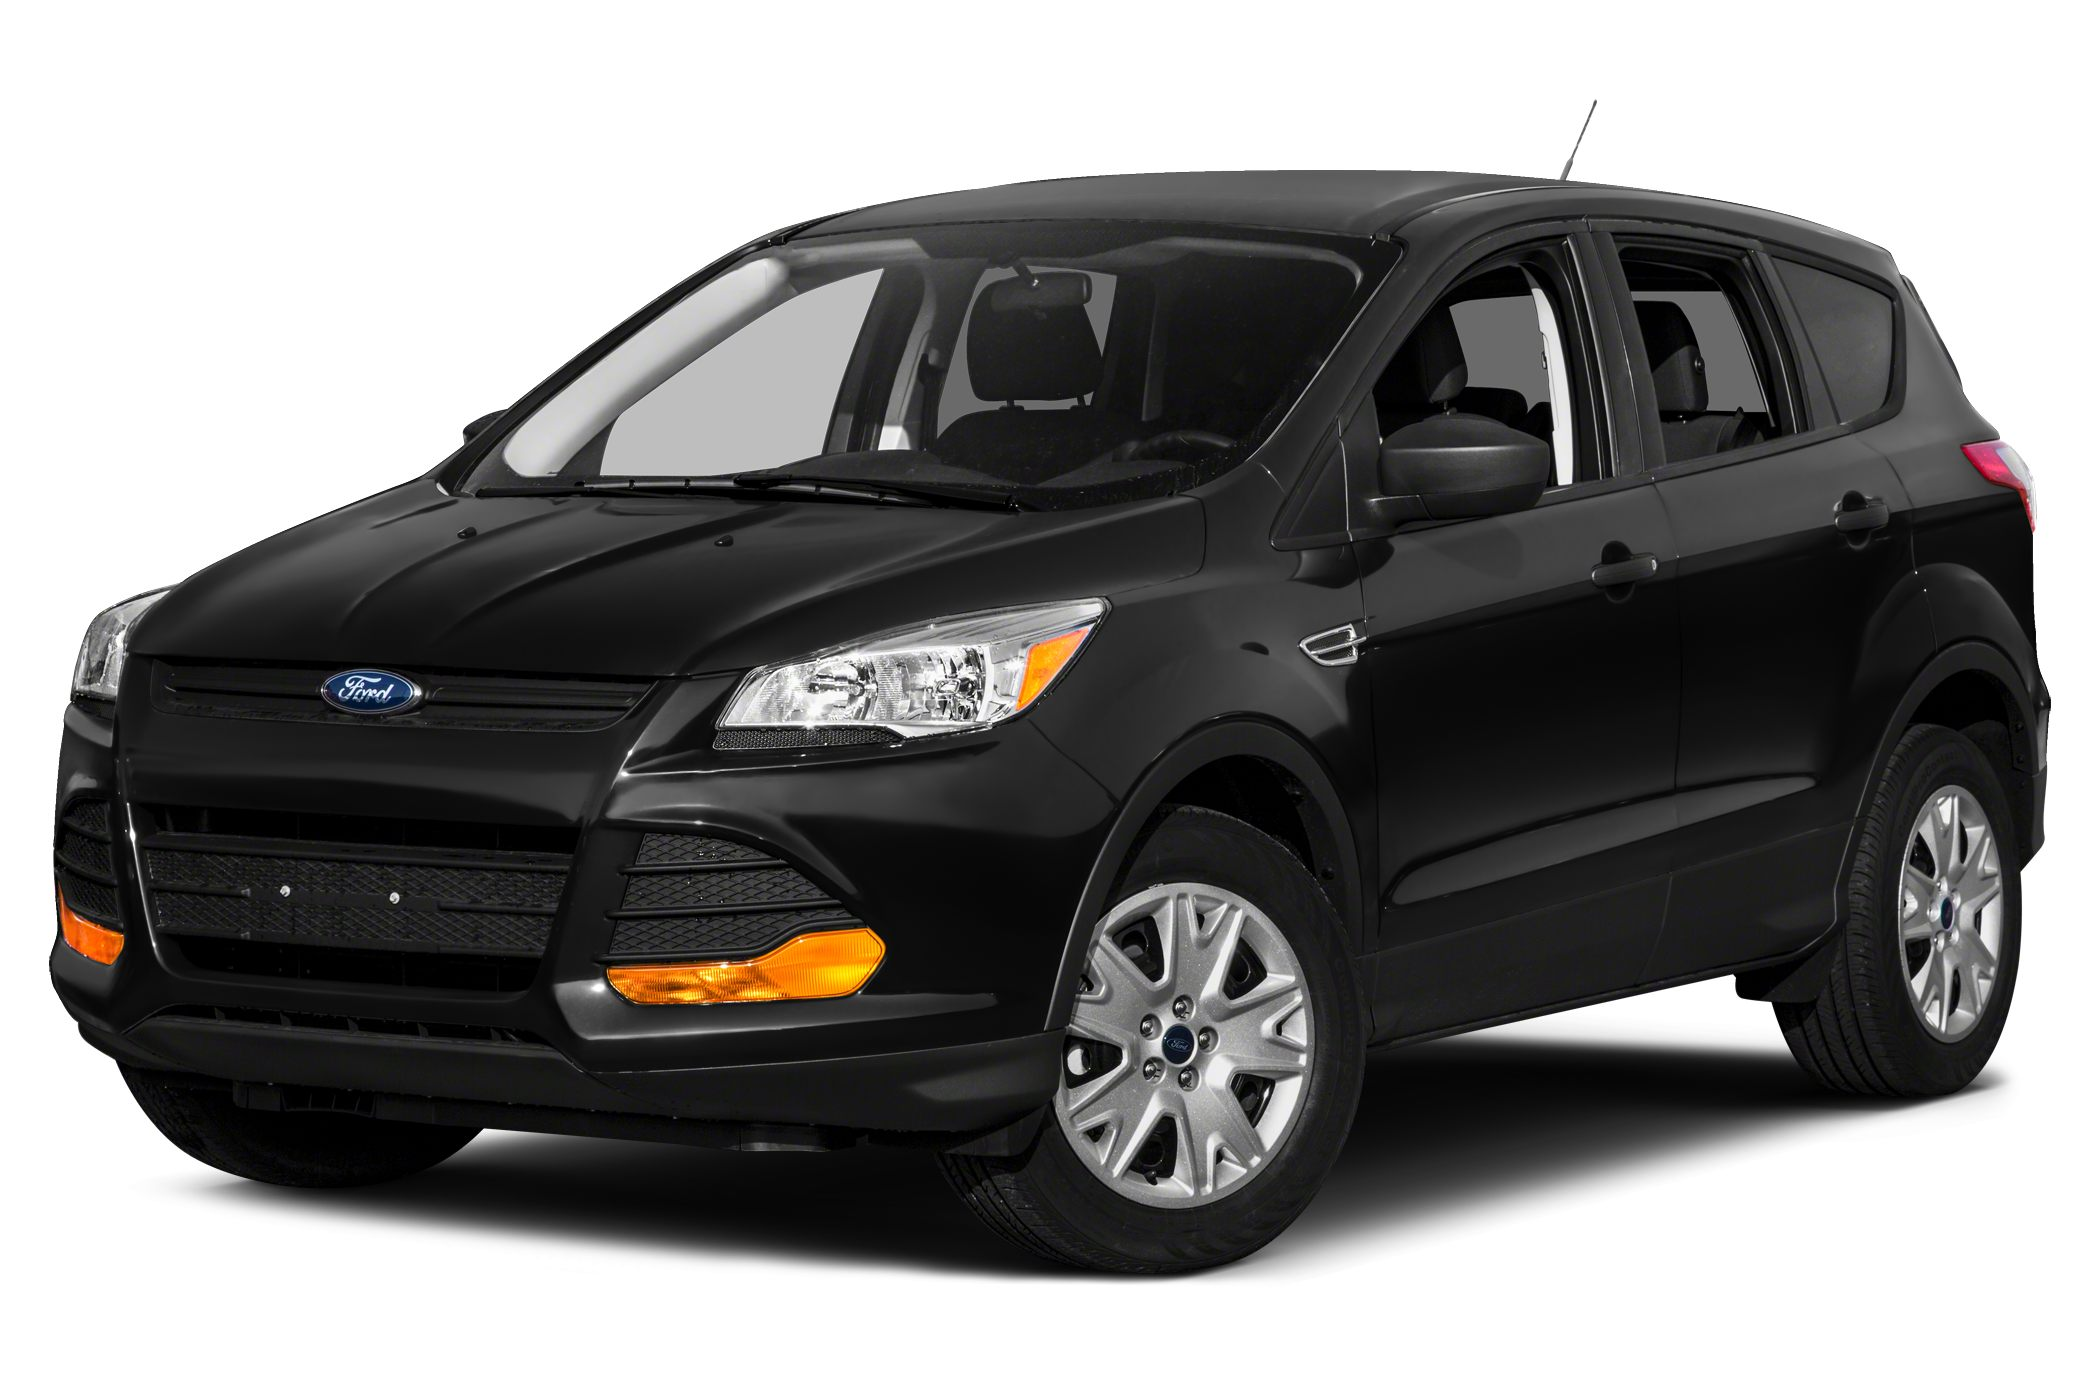 2013 Ford Escape SE Auto Check 1 Owner and Ford Certified Pre-Owned EcoBoost 20L I4 GTDi DOHC Tu